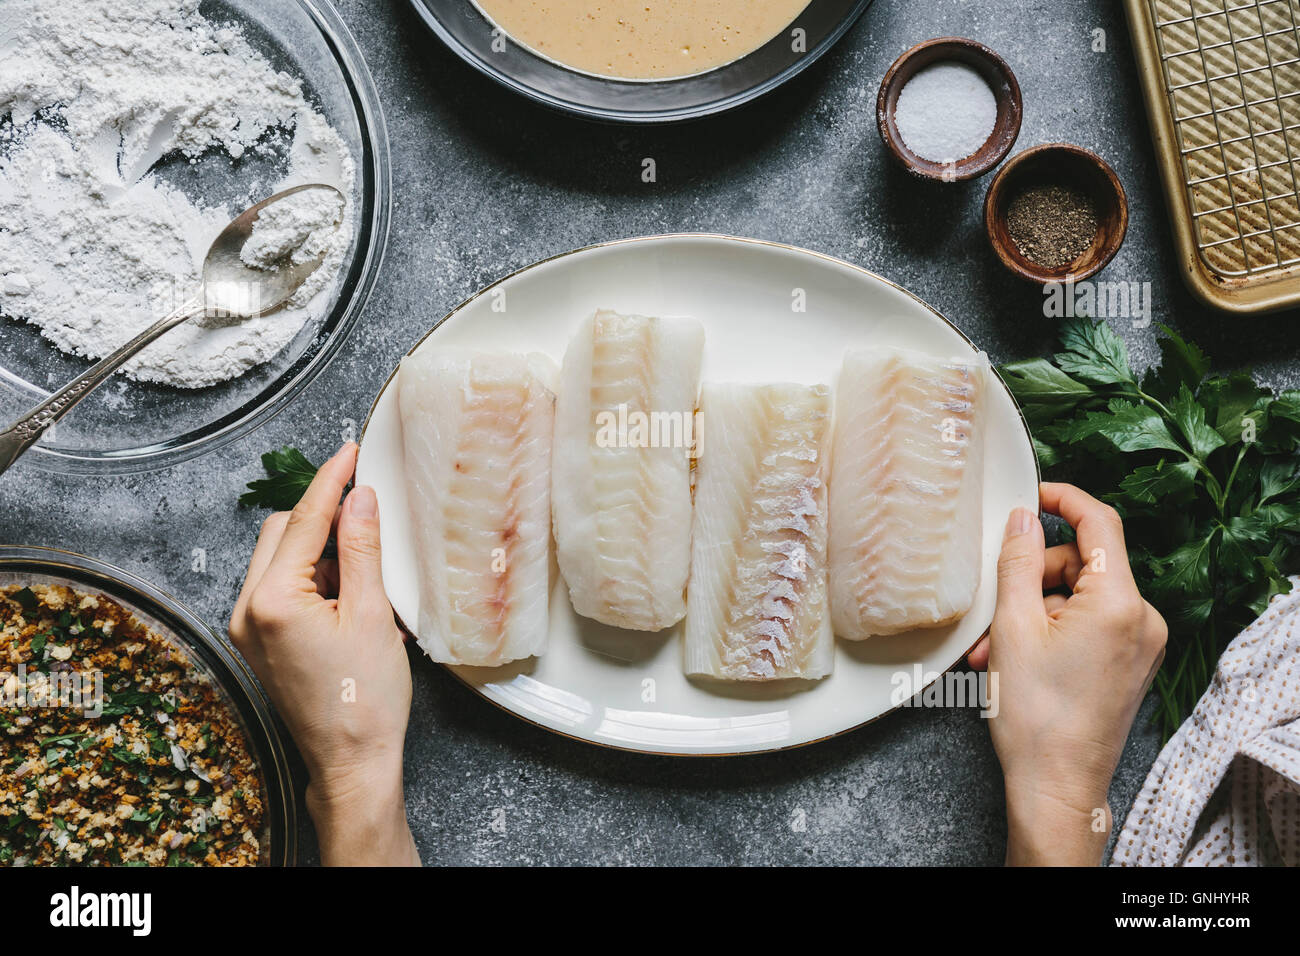 A woman is placing four cod fillets on the table. - Stock Image